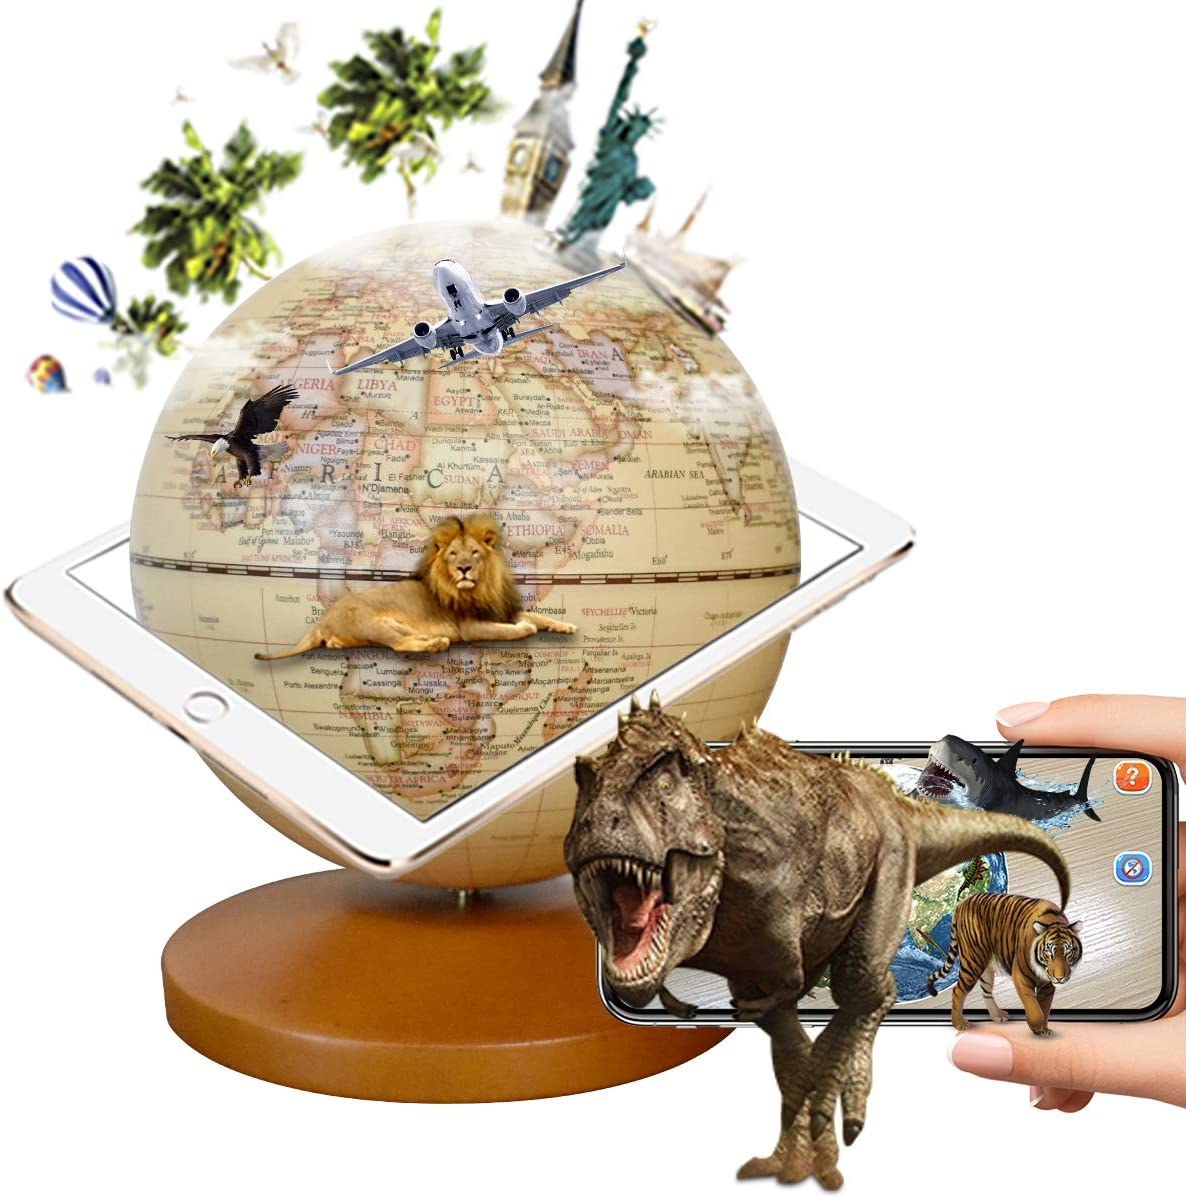 FUN GLOBE 3 in 1 Illuminated AR Explore The World Globe Desktop Decoration Geographic Interactive Earth Globes Office Supplies Holiday Gift with Adjustable LED & Light Music for Kids & Adult 5 in